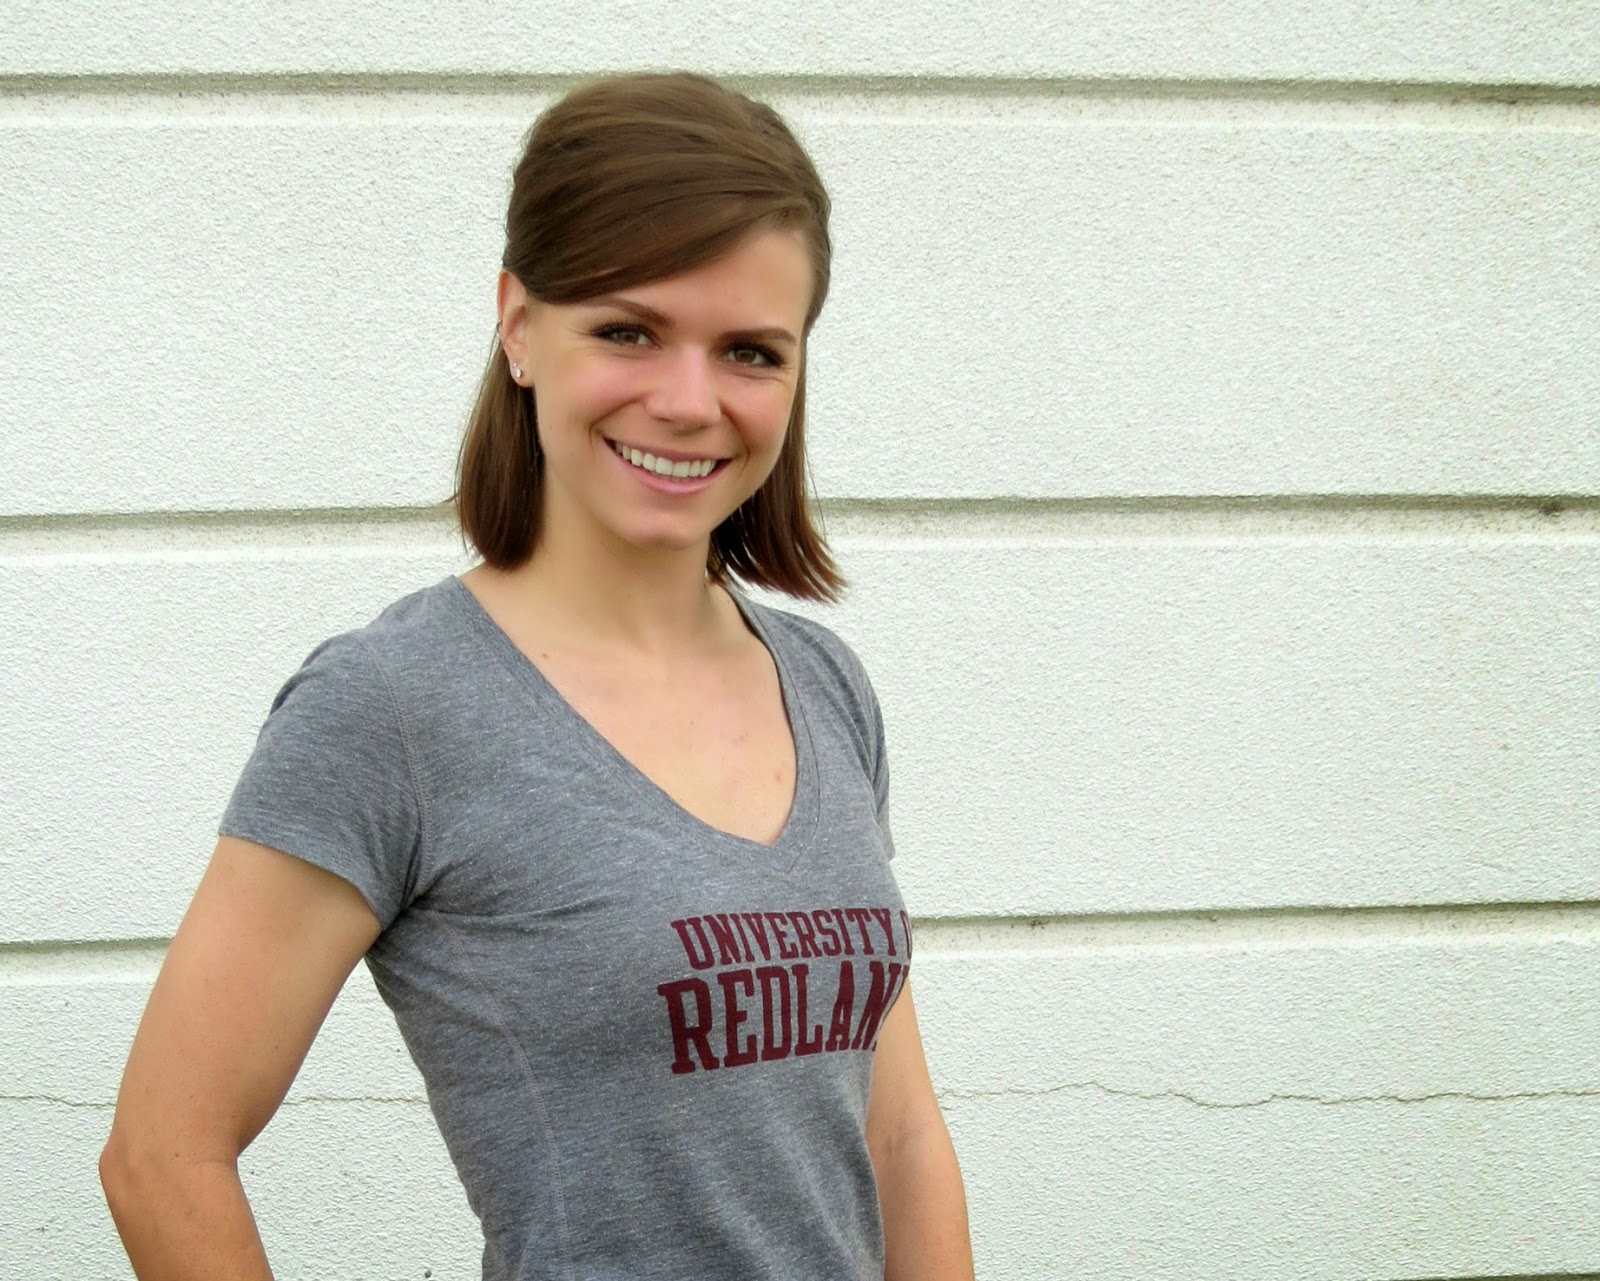 Sporty Casual, University of Redlands top